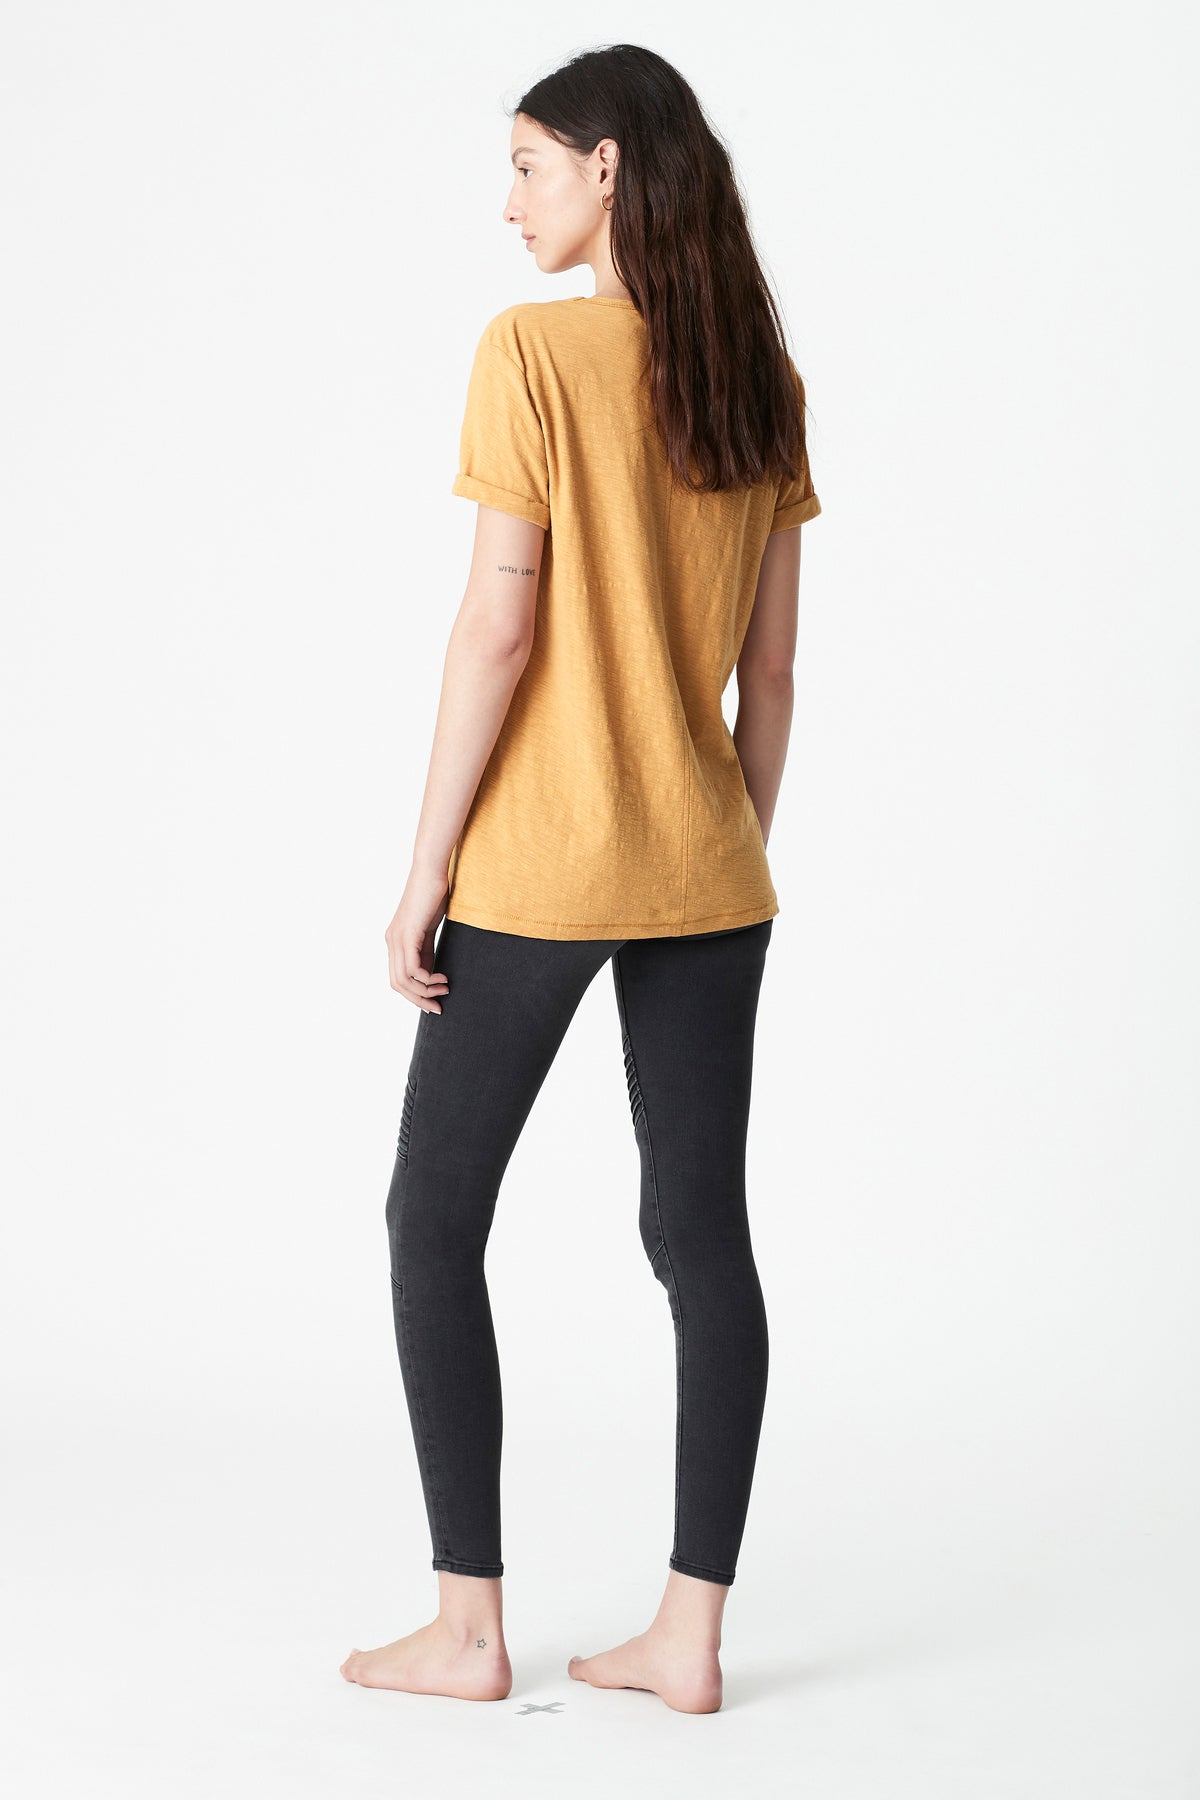 Evie Rolled Sleeve T-Shirt in Marigold